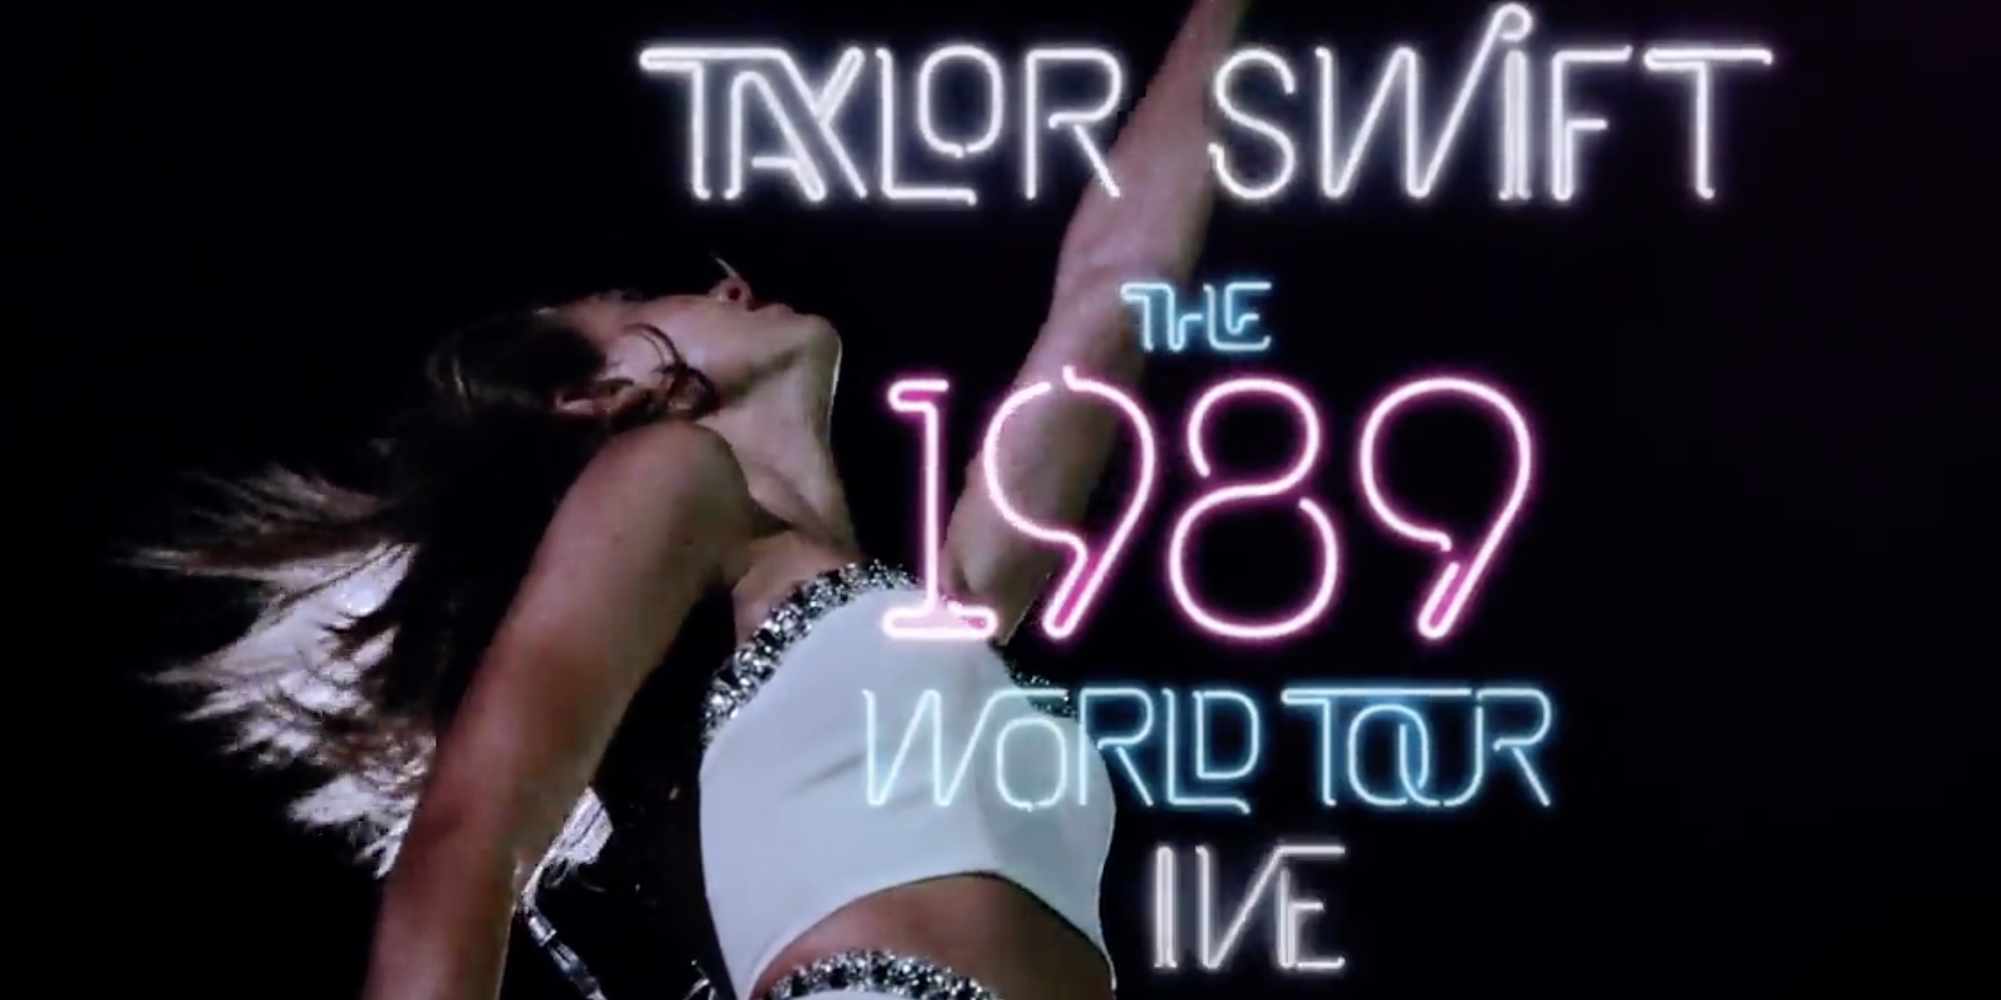 Taylor-Swift-1989-Live-apple-music